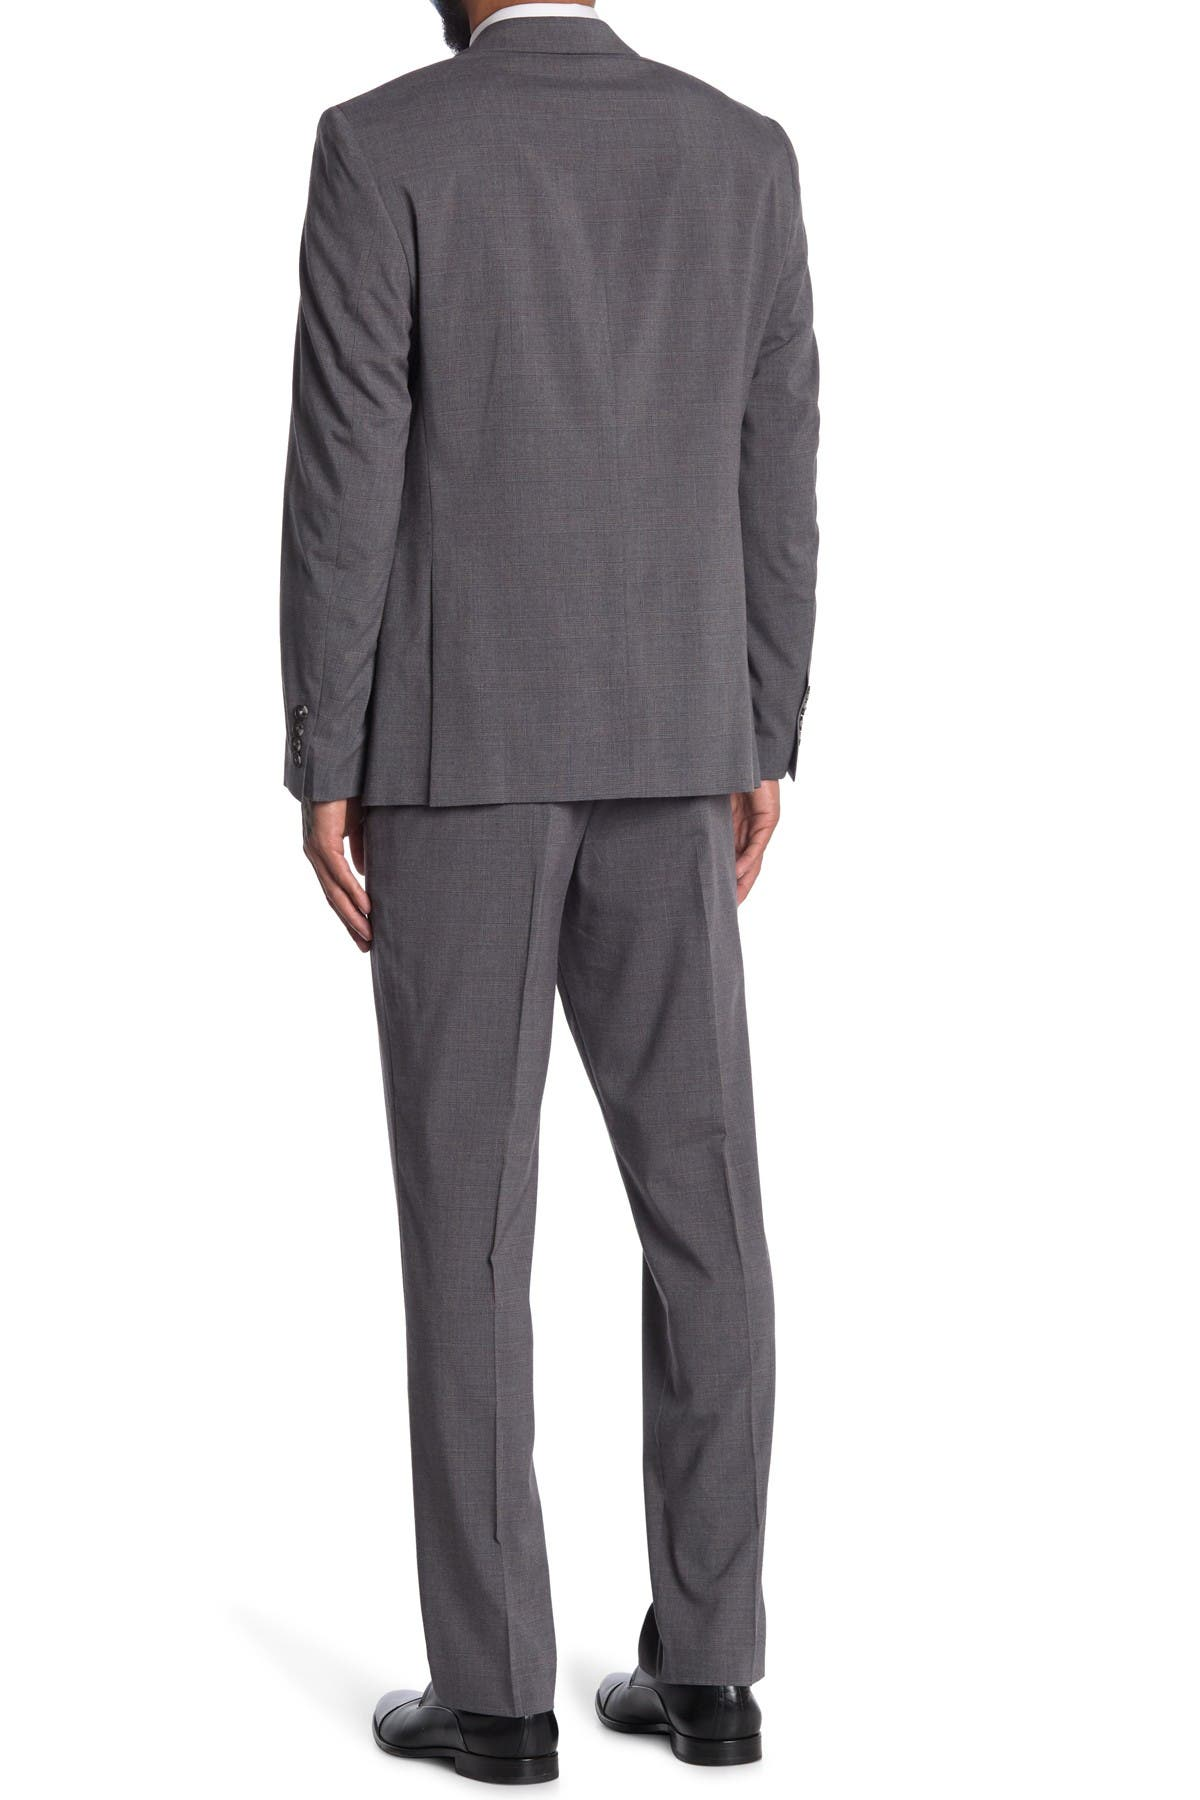 Image of Perry Ellis Slim-Fit Comfort Stretch Two-Piece Suit